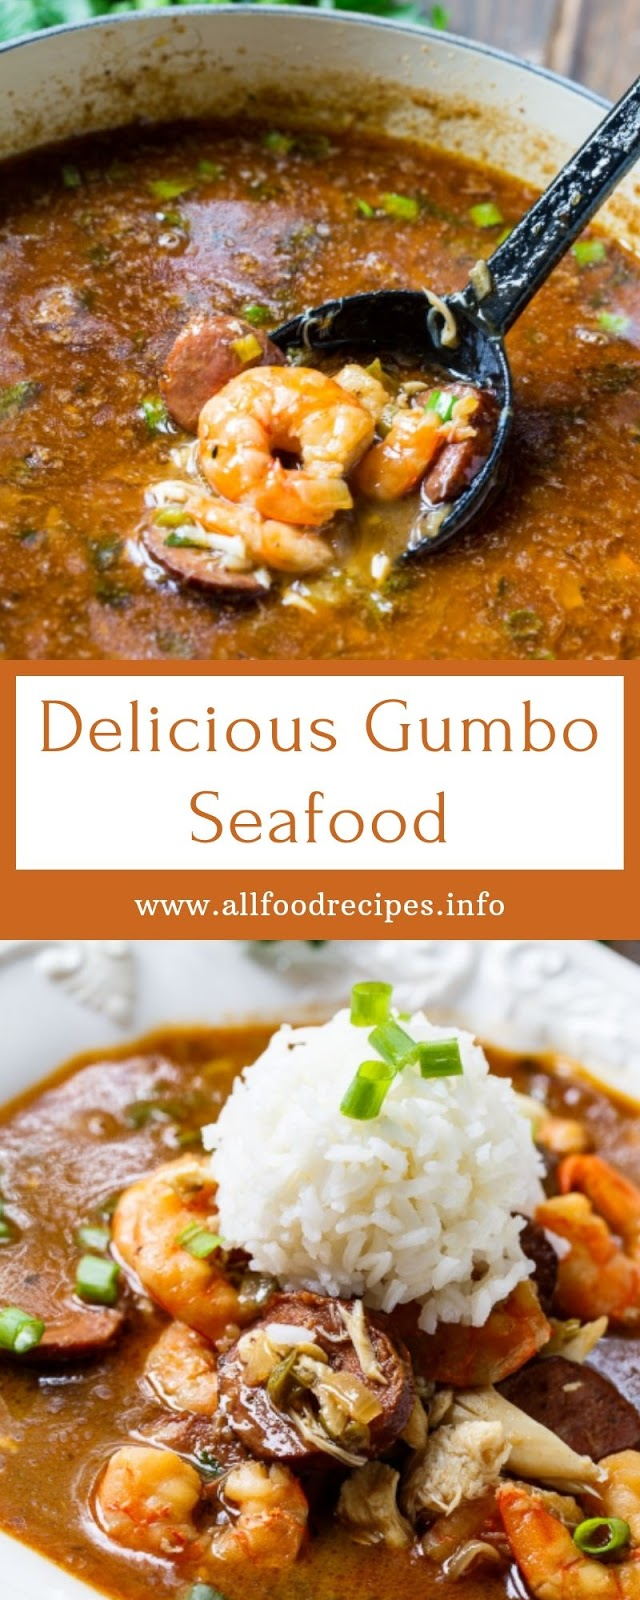 Delicious Gumbo Seafood